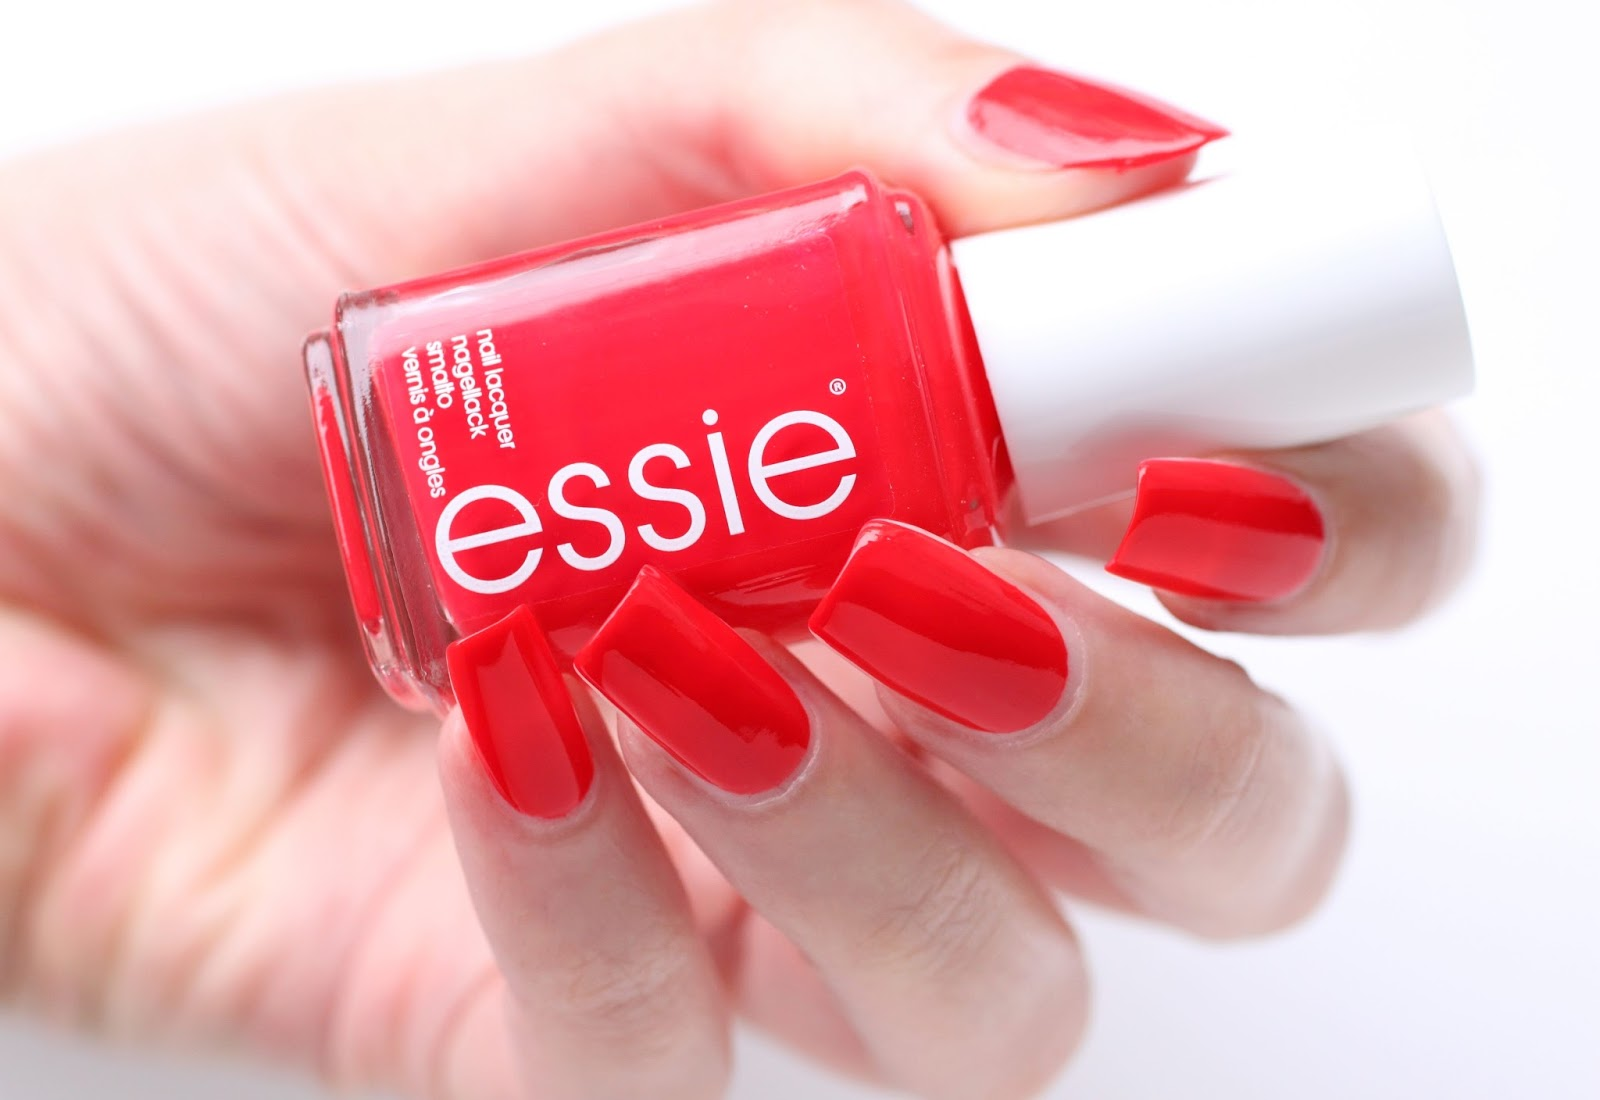 Essie Nail Polish Palette And Composition Of Gel Polish Professional Series Reviews